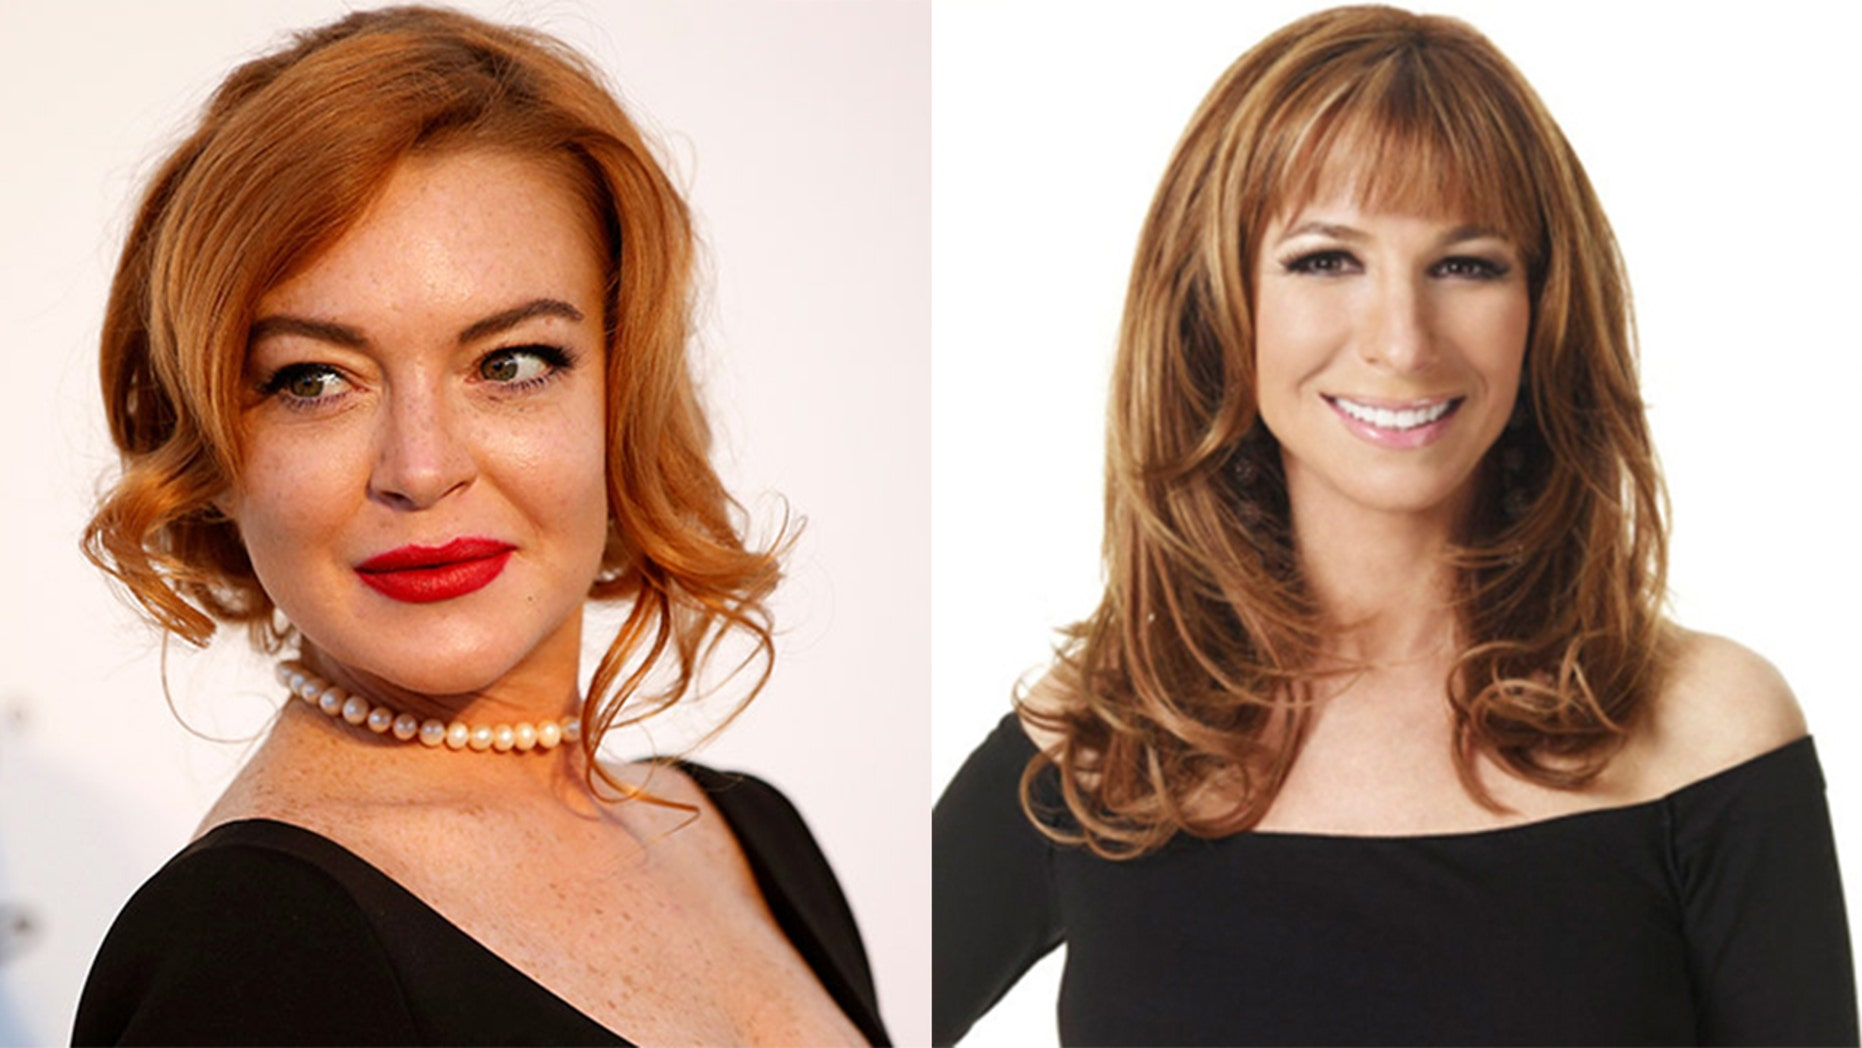 Lindsay Lohan rings in her 32nd birthday with 'RHONY' alum Jill Zarin.